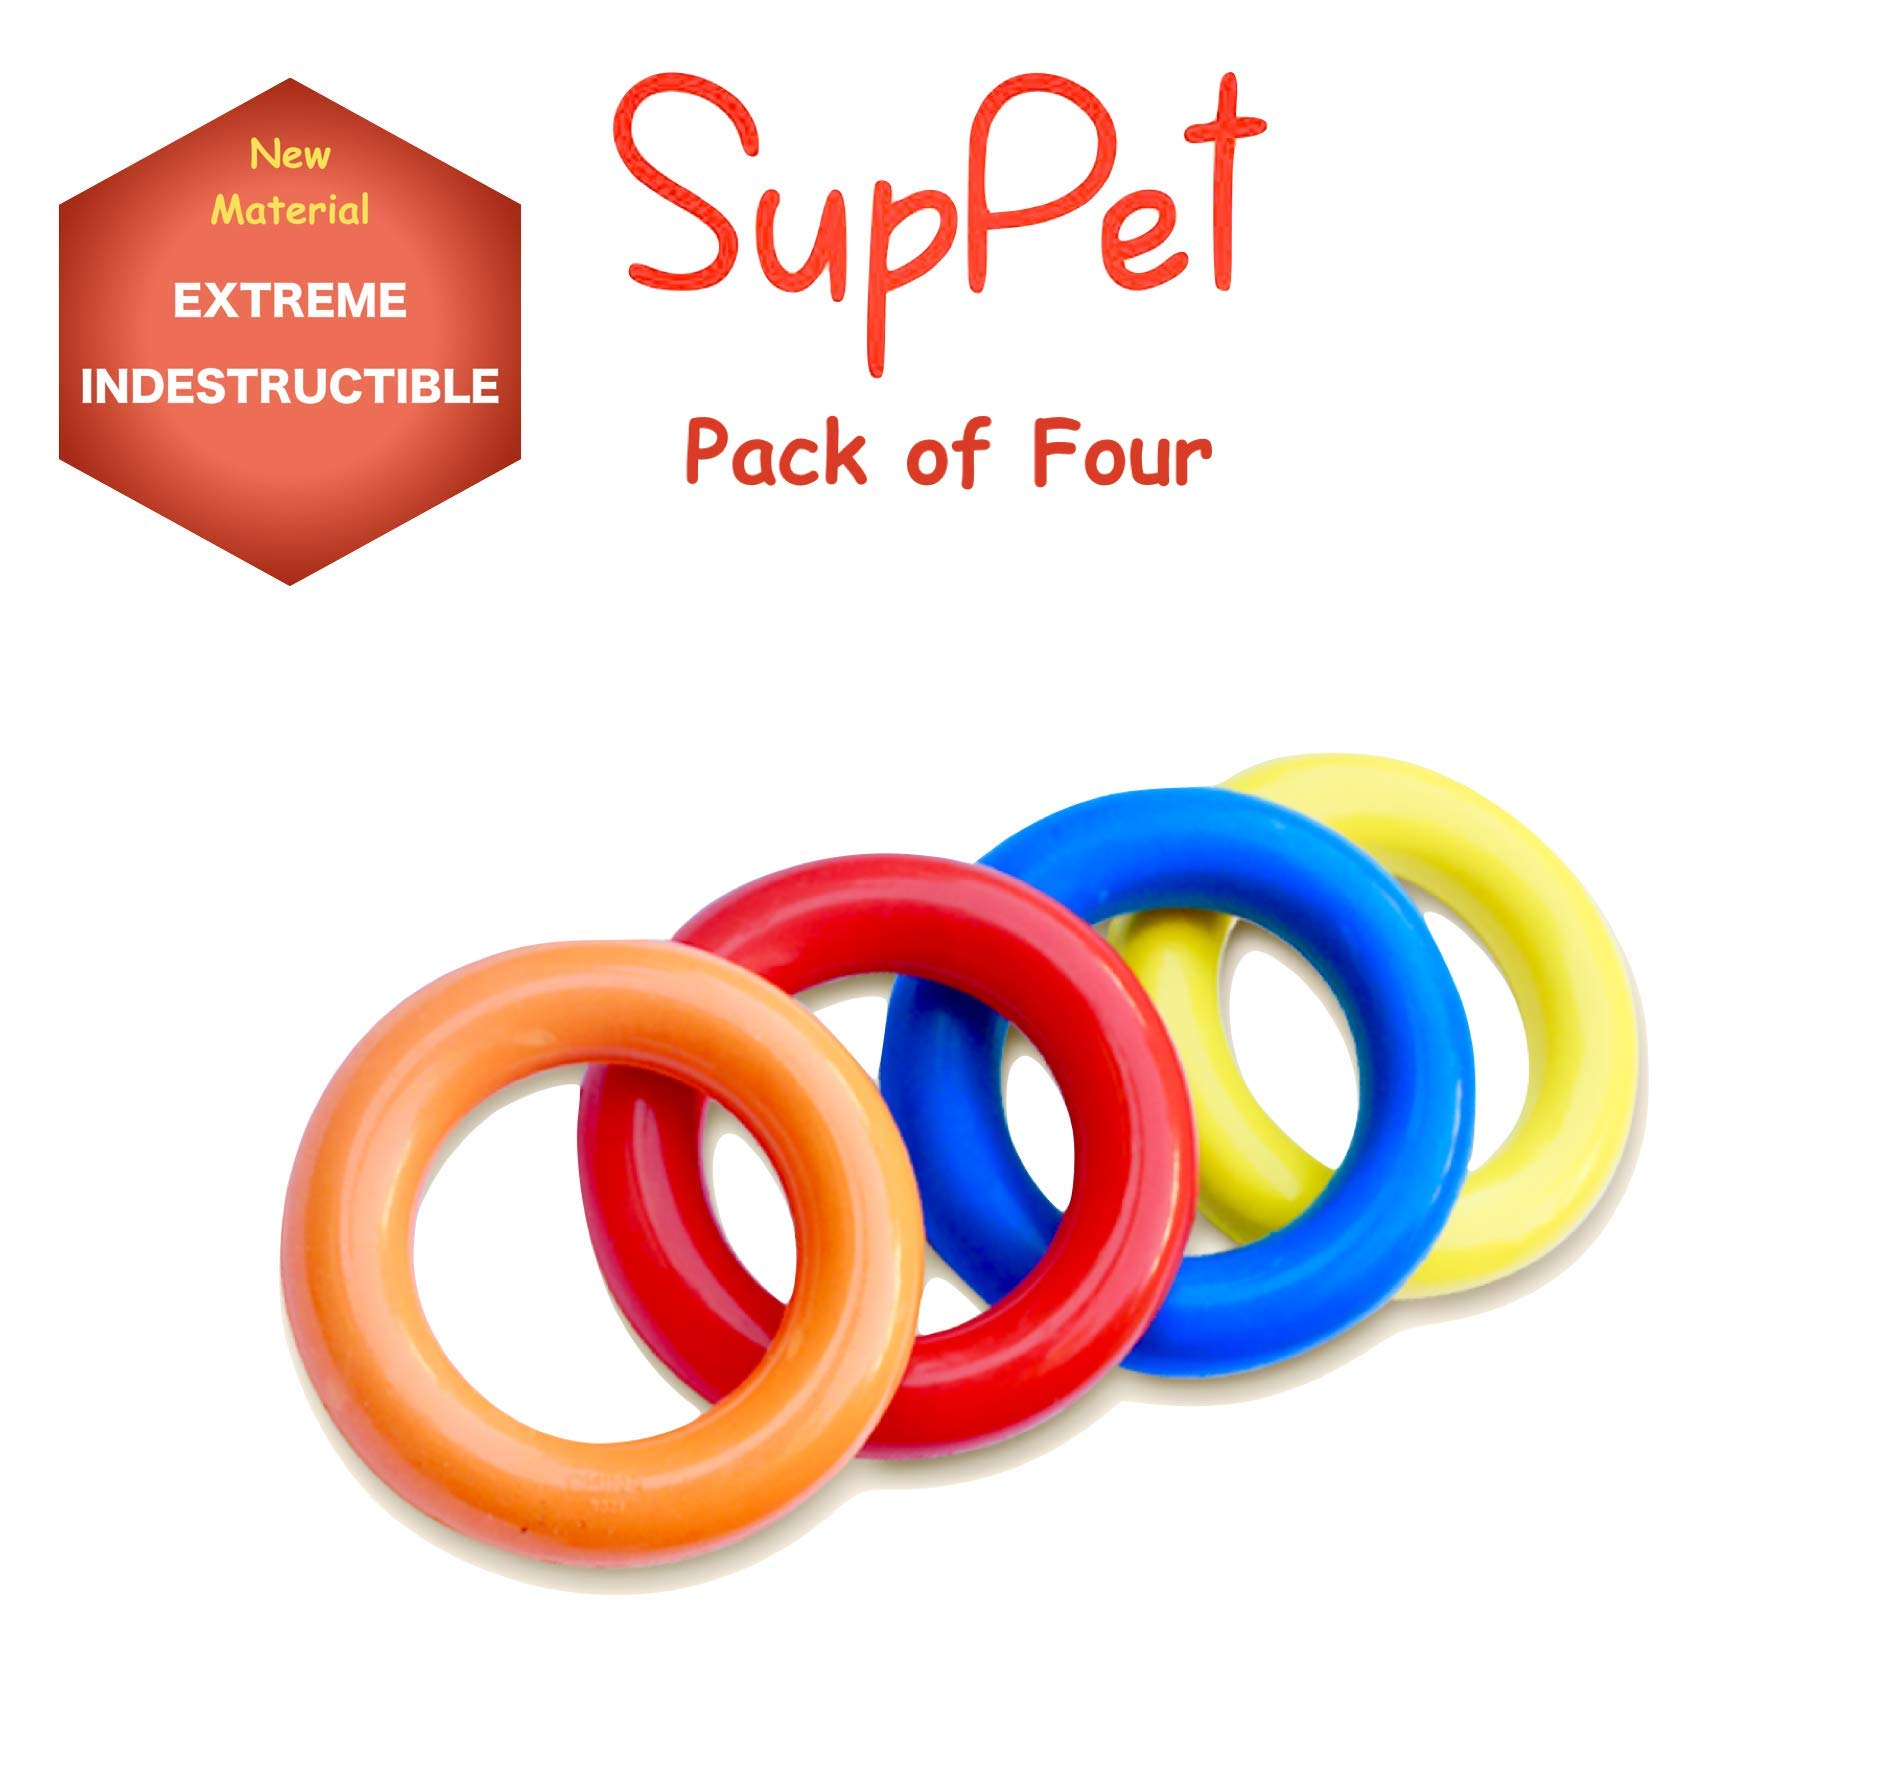 4 PCs Extreme Tough Indestructible Chew Toy for Aggressive chewers - Super Tough Strong Durable Natural Rubber - Non-Toxic 100% Safe. for Large and Small Dogs Pitbulls, German Shepherds Tested by SupPet